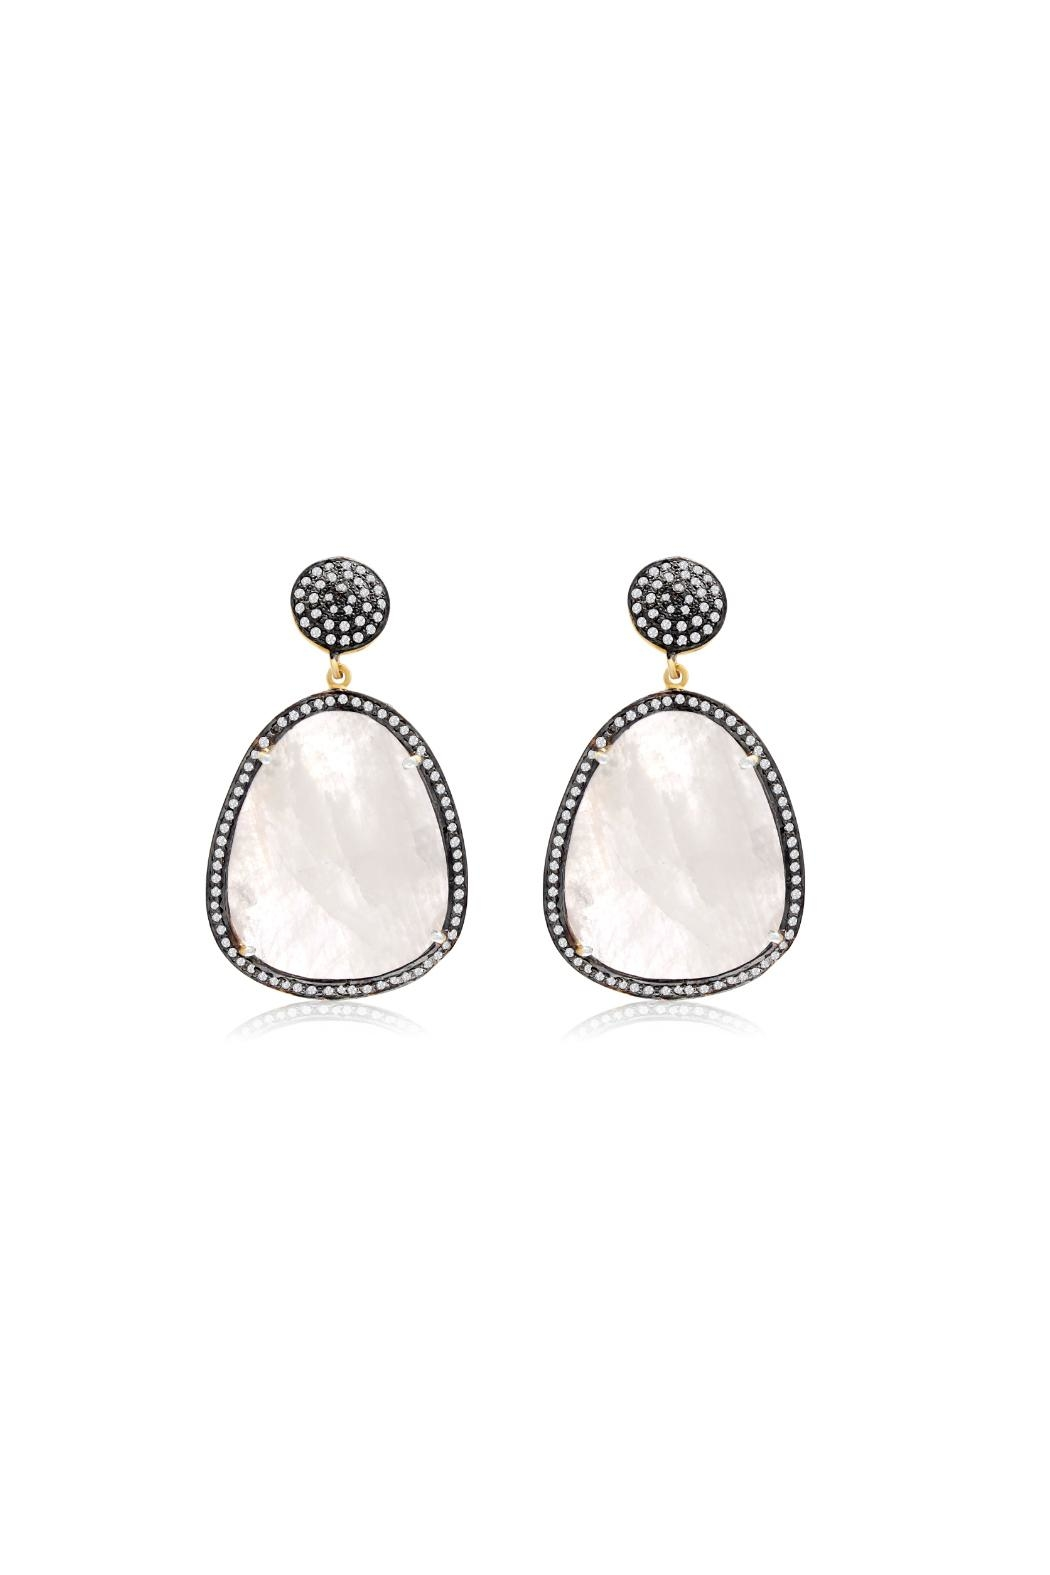 6th Borough Boutique Moonstone Gemma Earrings - Main Image